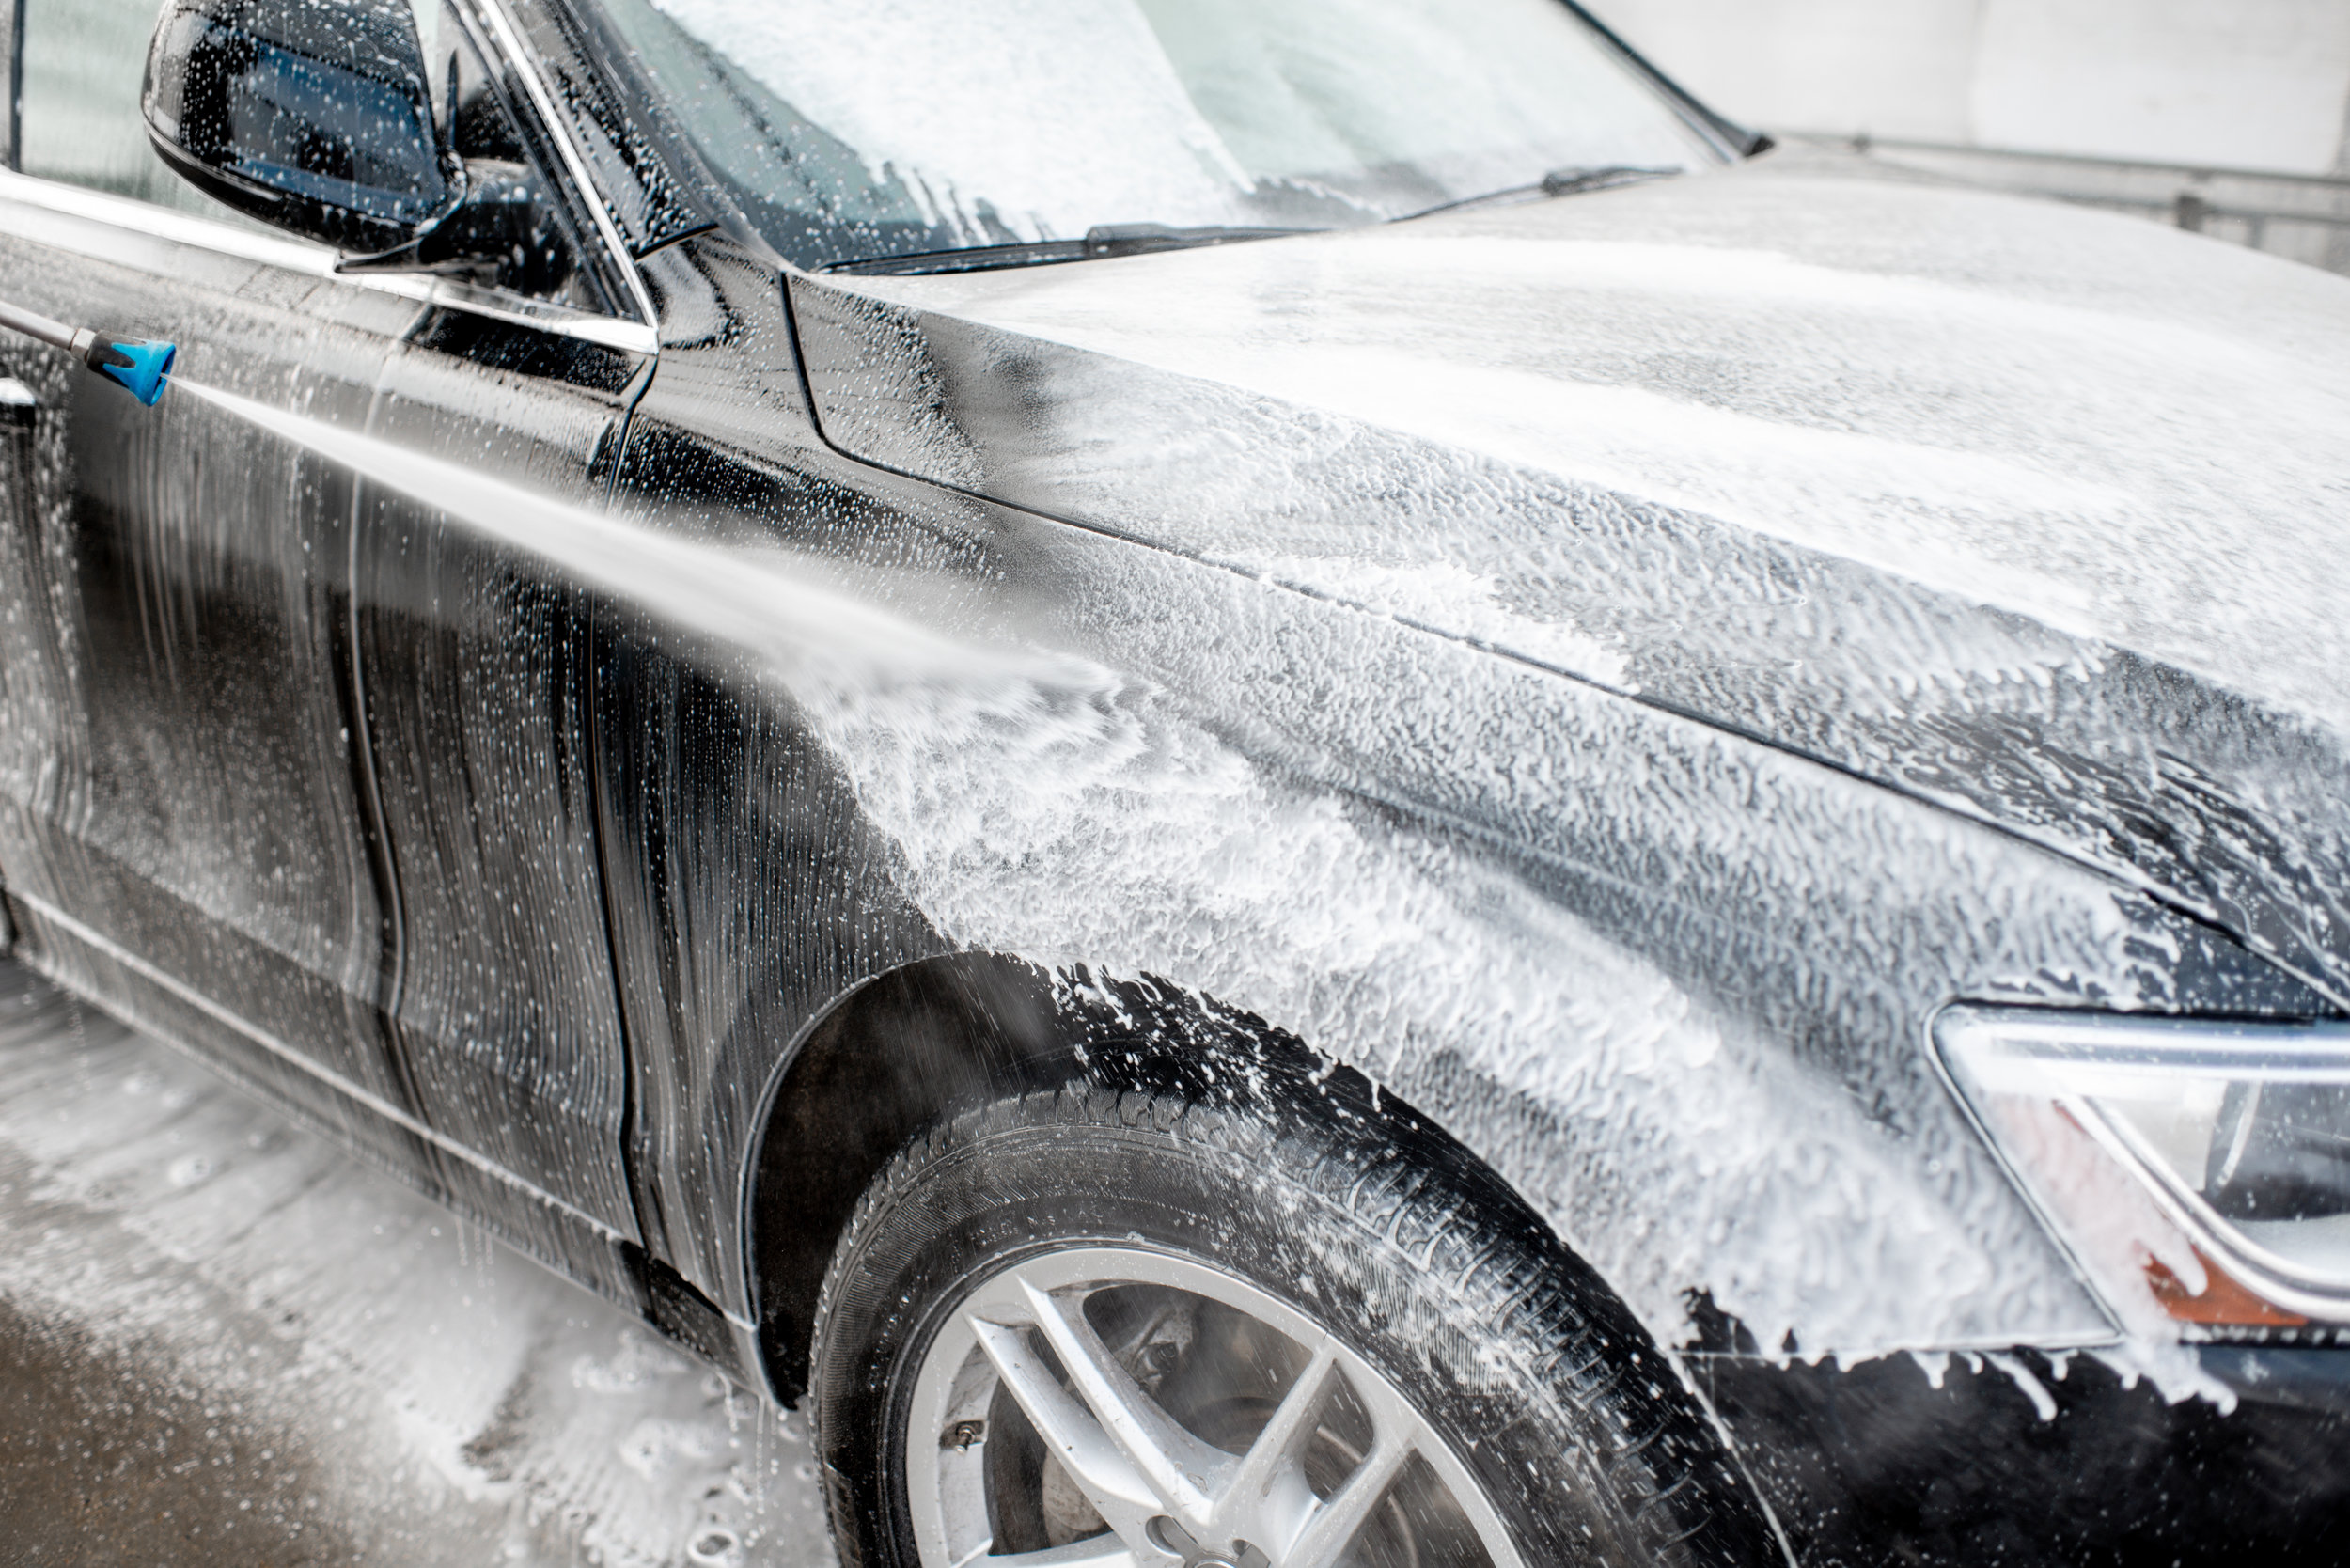 Close-up of a car under the water jet during the washing process on a self service car wash